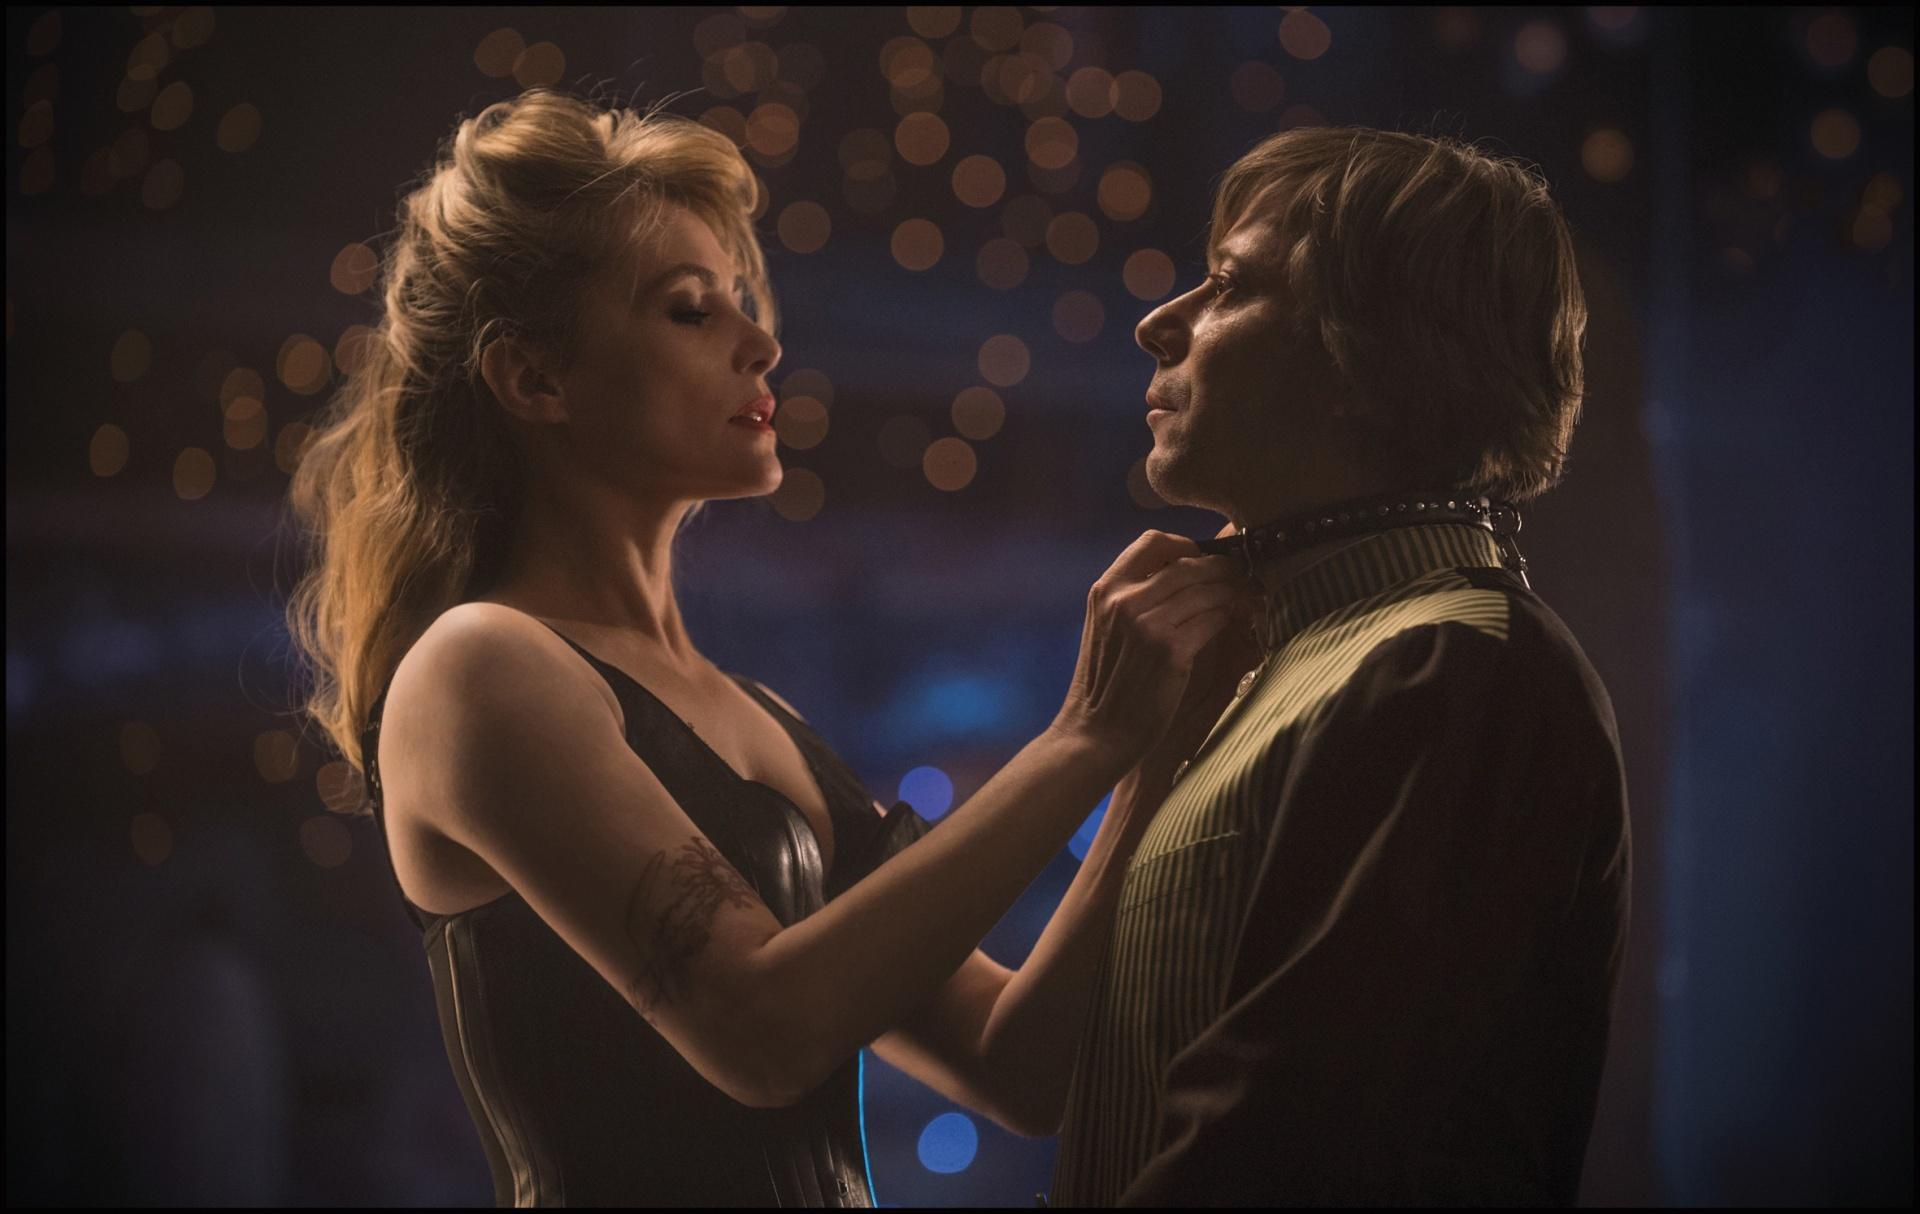 still-of-mathieu-amalric-and-emmanuelle-seigner-in-venus-in-fur-2013-large-picture.jpg